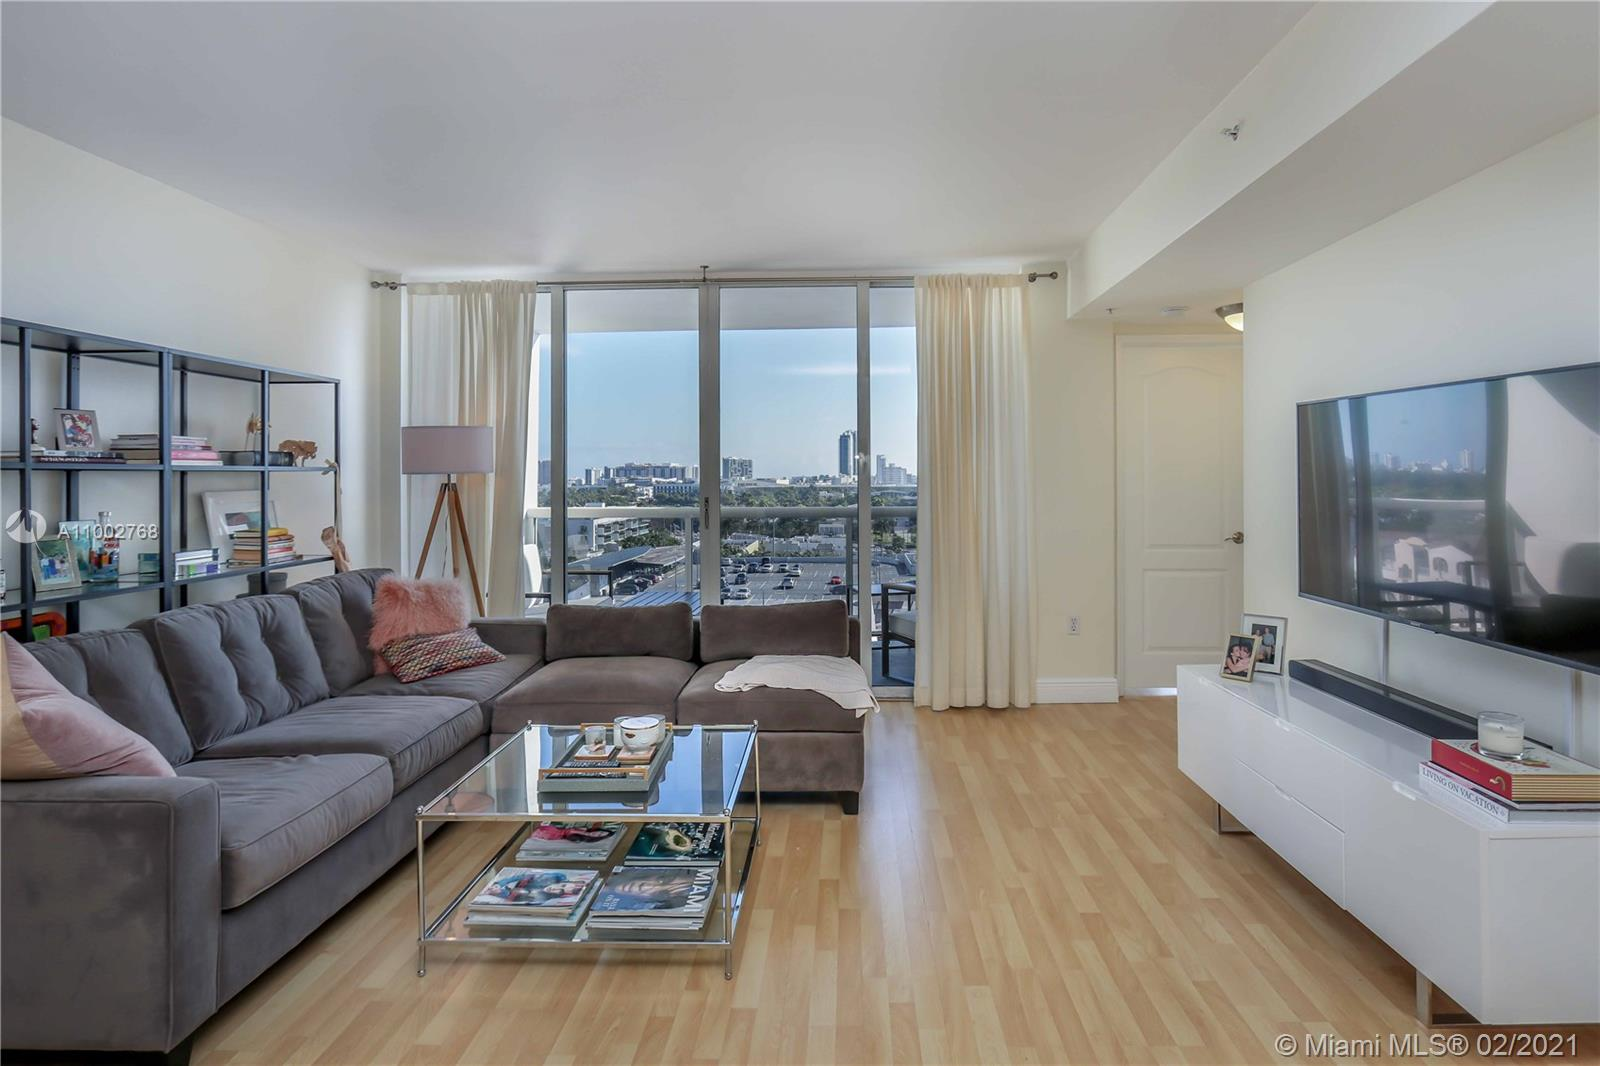 Photo of Sunset Harbour N Apt 1115 that clicks through to the property detail page